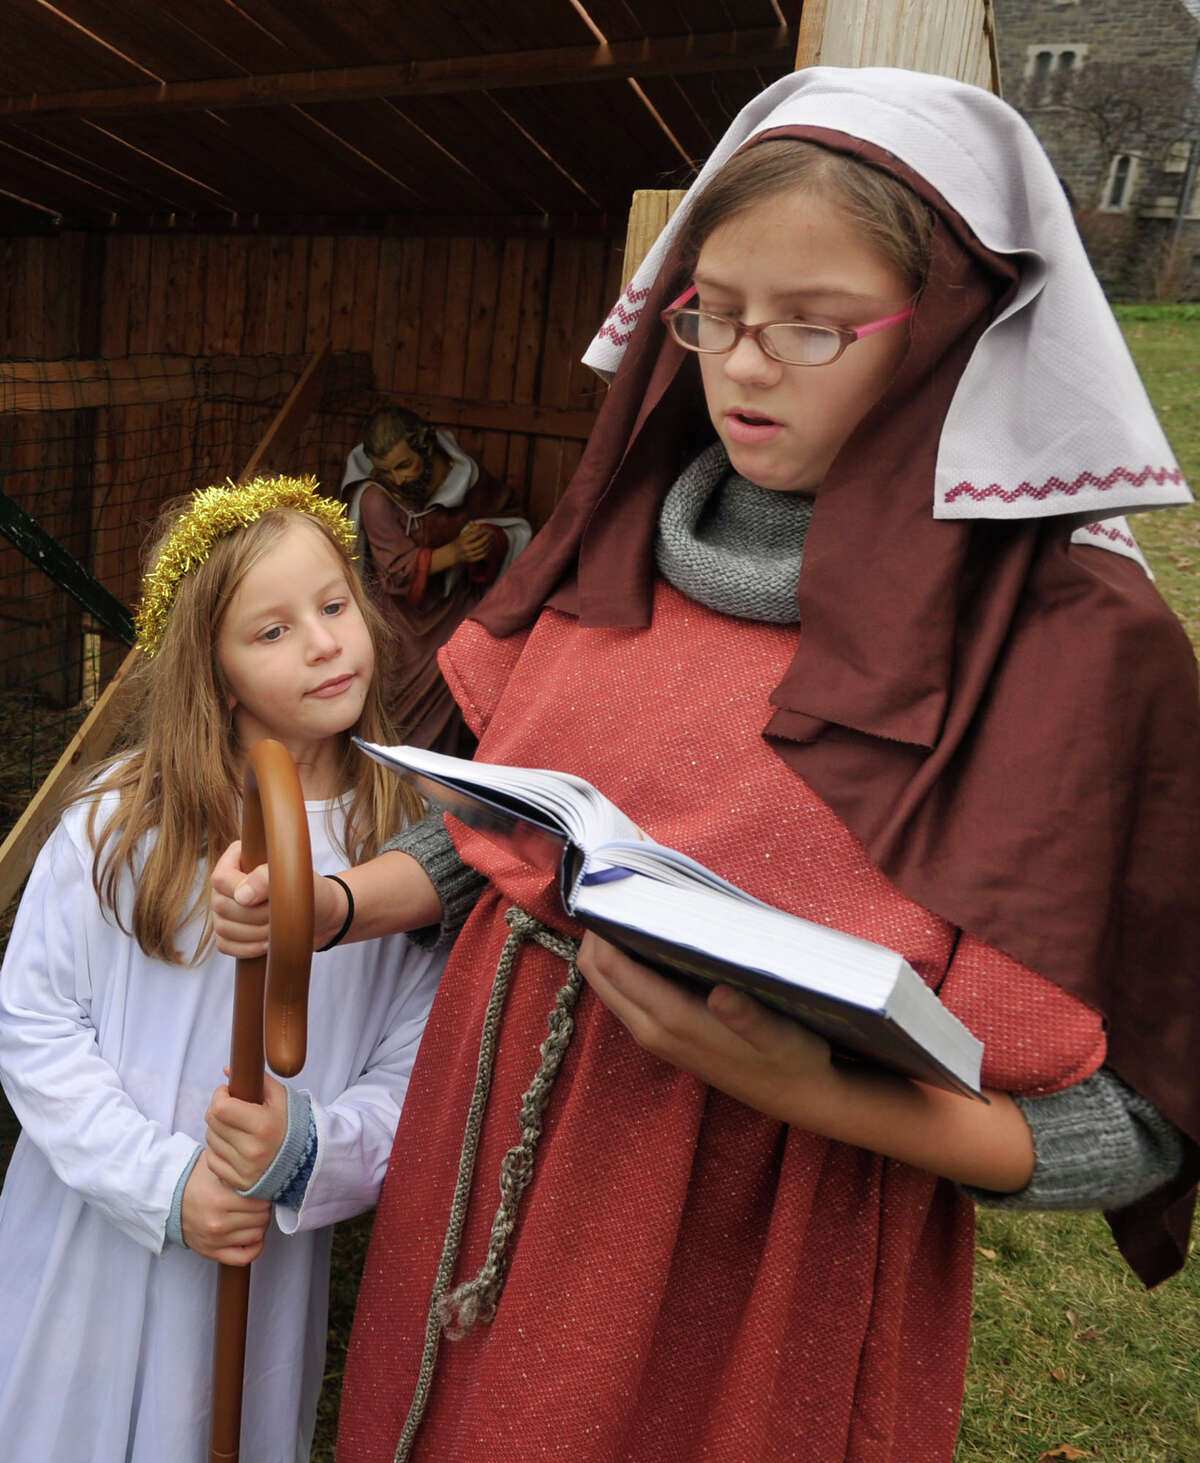 Emma Olmsted, dressed as a shepherd, recites from the Bible as her sister, Lara, dressed as an angel, watches during the live nativity scene in front of the First Congregational Church of Greenwich in Old Greenwich, Conn., on Sunday, Dec. 22, 2013.